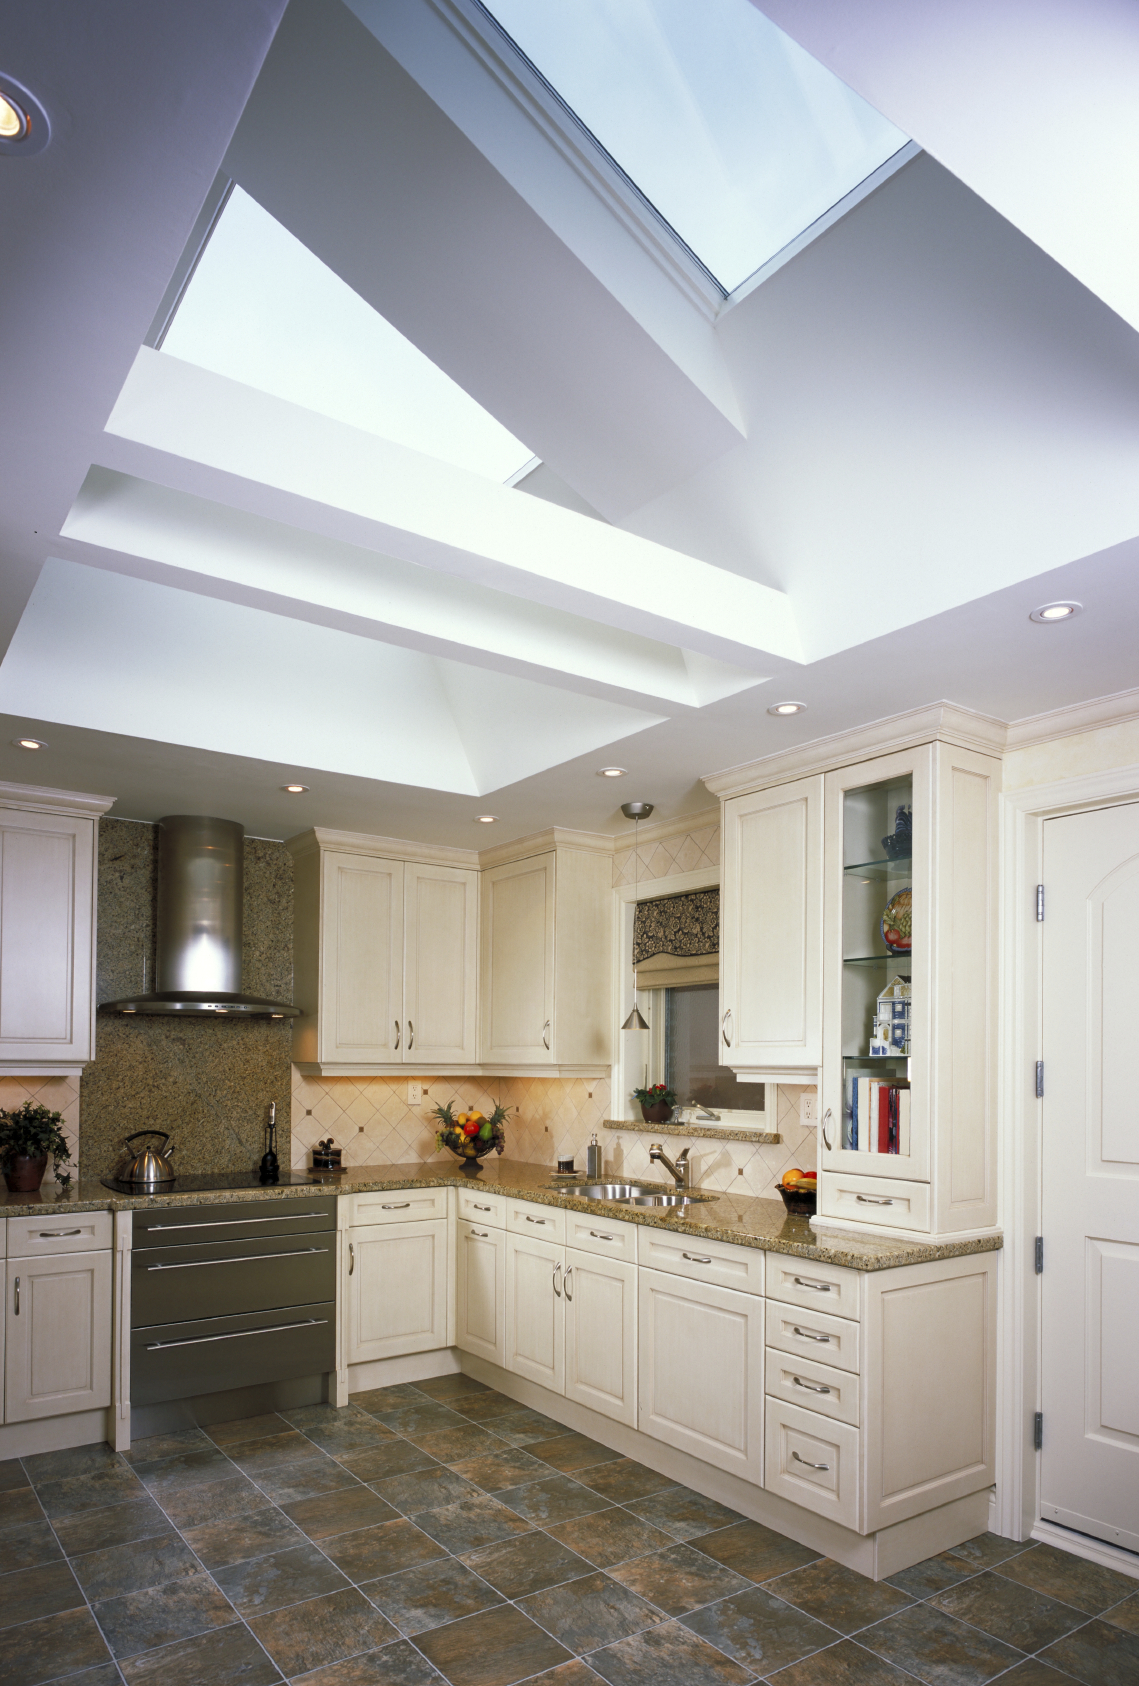 velux skylights are widely consider the best skylight for